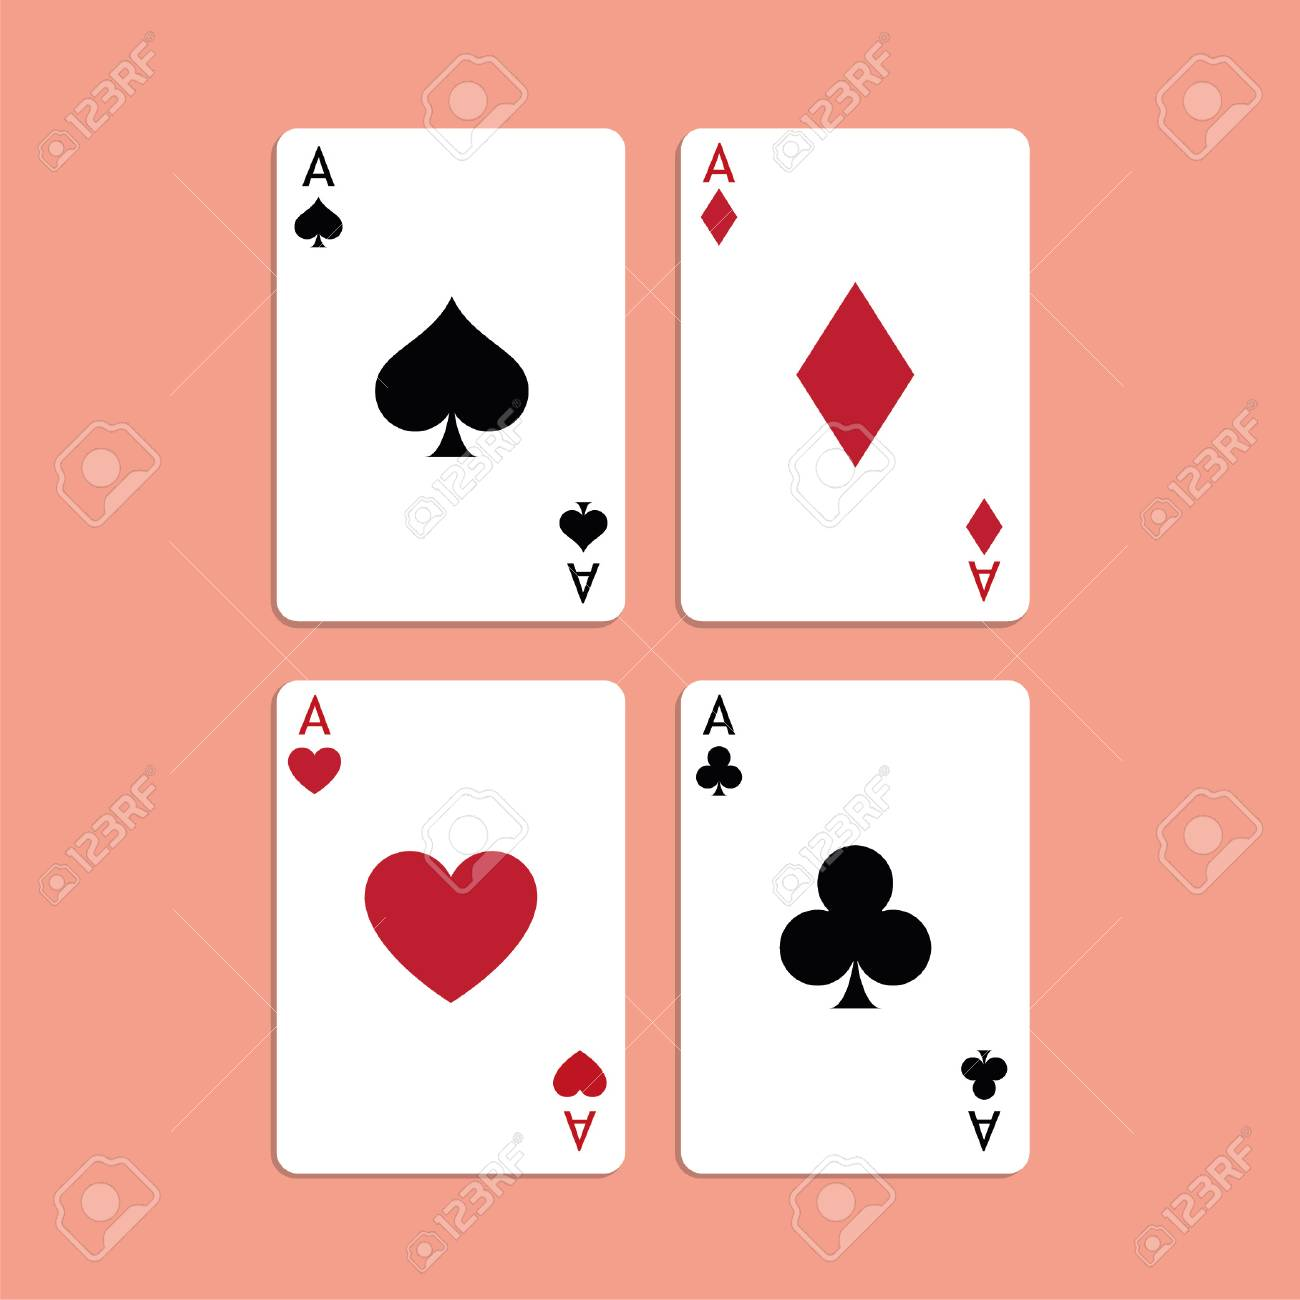 Vector Illustration Playing Poker Cards Four Aces Royalty Free Cliparts Vectors And Stock Illustration Image 115043136